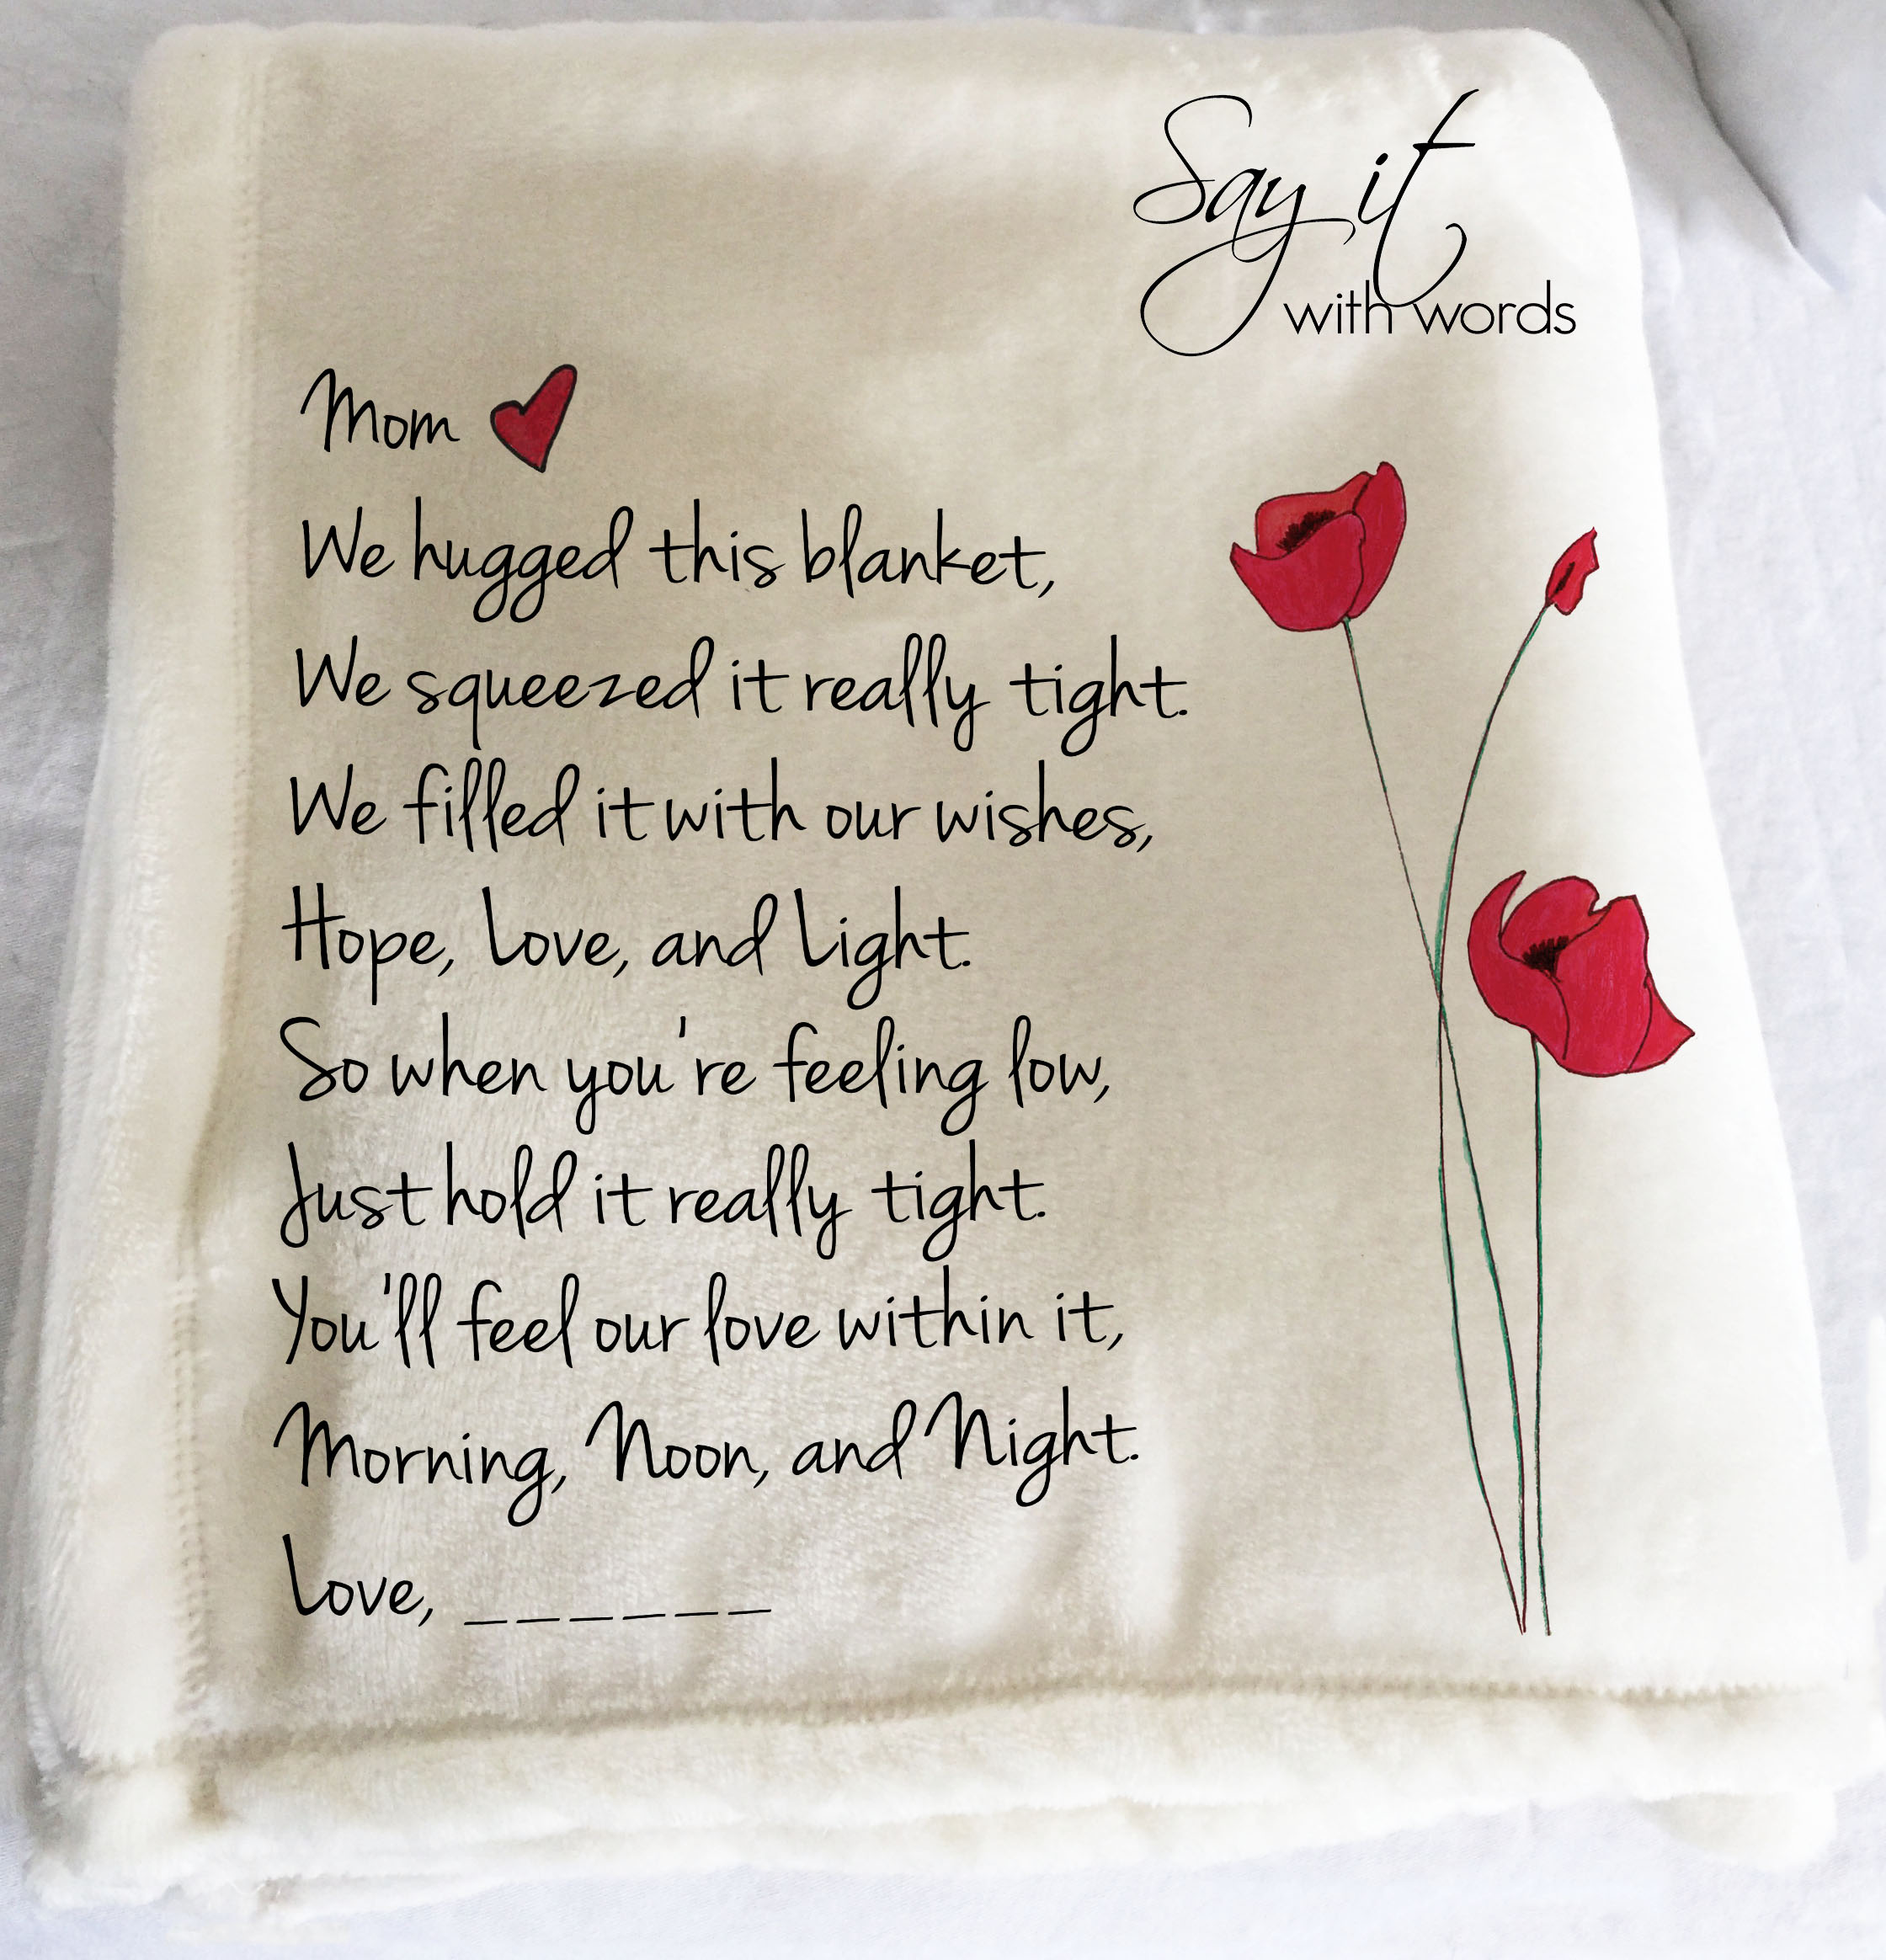 We hugged this blanket tight, personalized throw blanket, Mother's Day gift, personalized gift for Mom, red hand drawn poppies, personalized gift